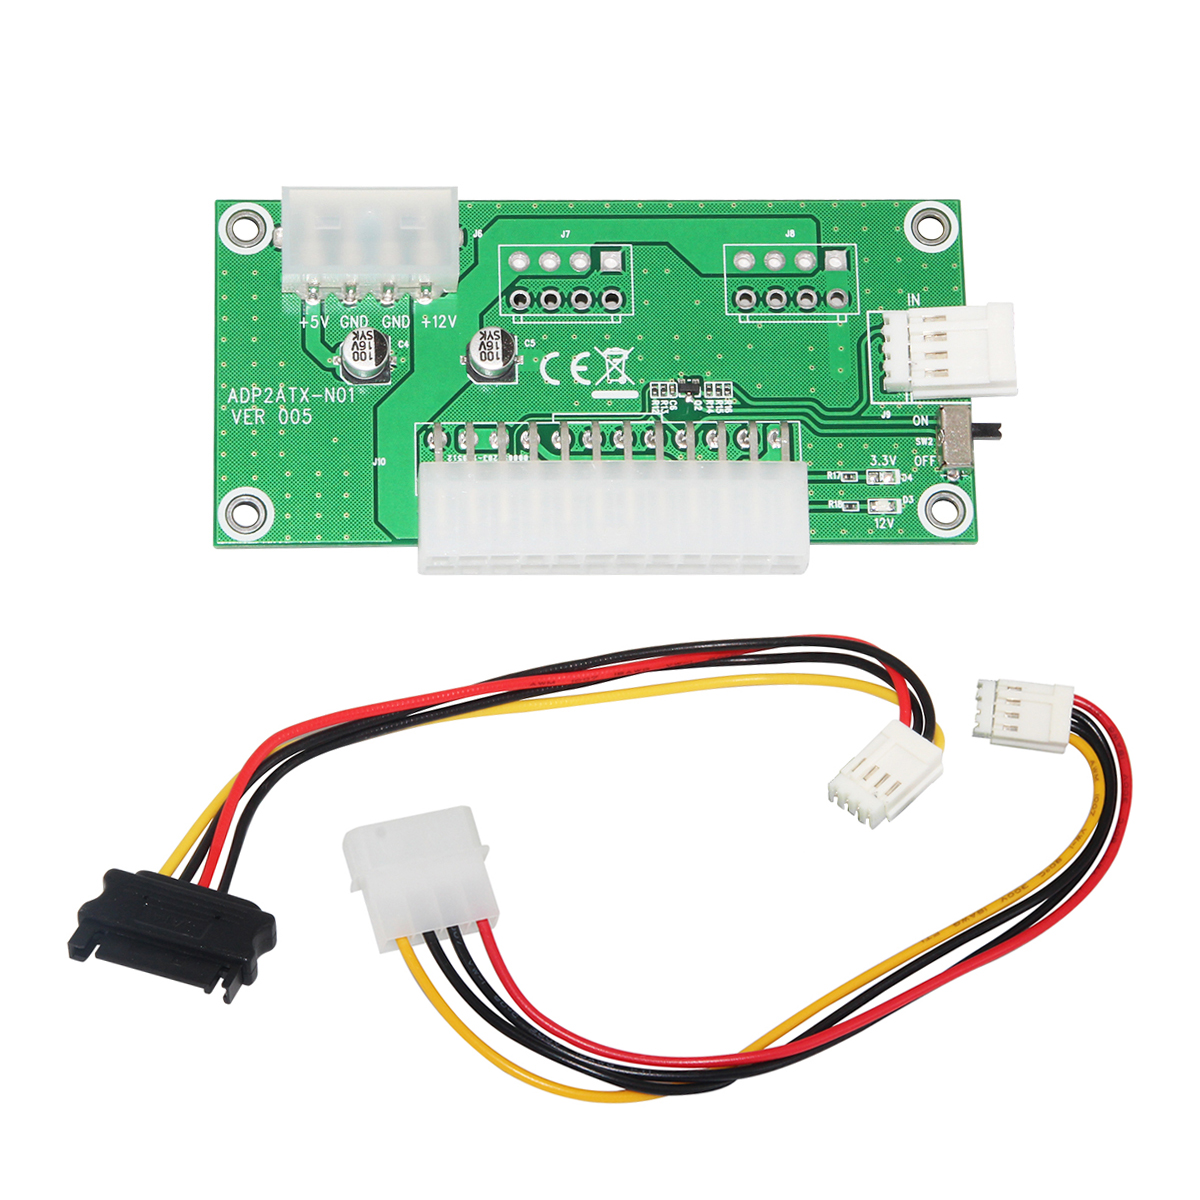 24Pin ATX PC Desktop Dual PSU Sync Starter Power Board Computer Power Supply Breakout Module Adapter 4Pin + SATA Detection Cable desktop computer power supply god 700m game power rated at 550w 12cm fan mute stable module wide voltage